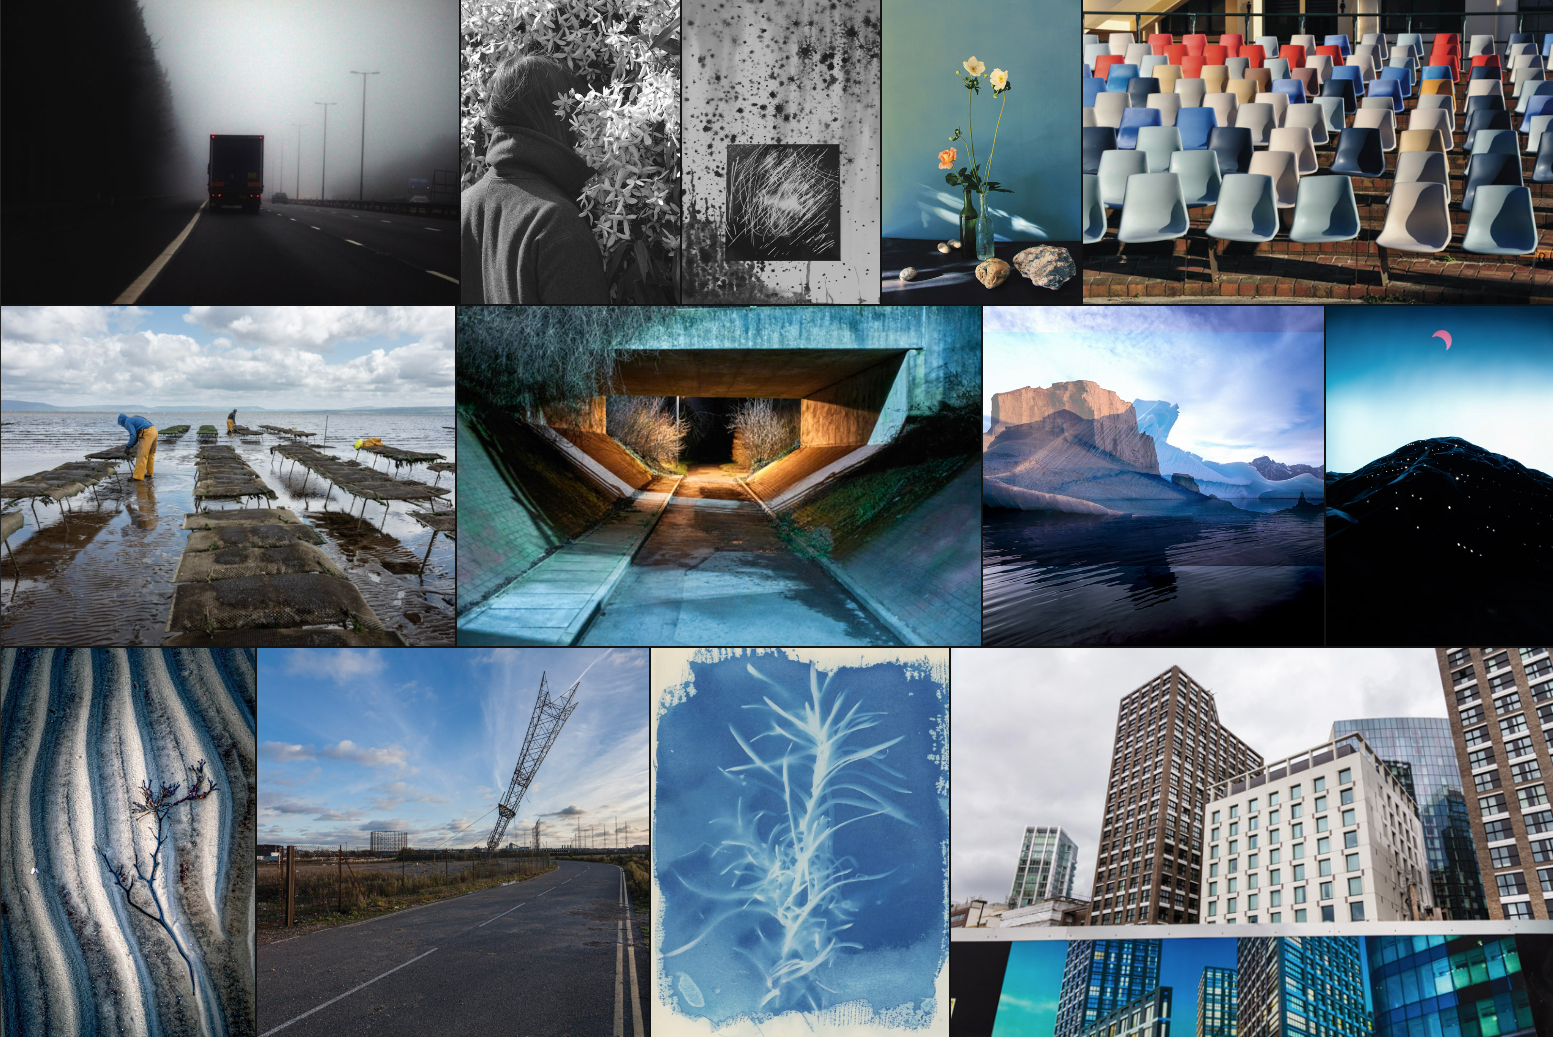 Compiltation of photographs showing a lorry on a motorway, a person with head in a bush, abstract black & white, still life of cut flowers, empty plastic chairs, people working in the sea, a lit underpass, double exposure of sea & mountains, a dark mountain with a red moon above, lines and seaweed in the sand, a pylon at the end of a road, cyanotype of a plant & high-rise buildings above a hoarding showing high-rises